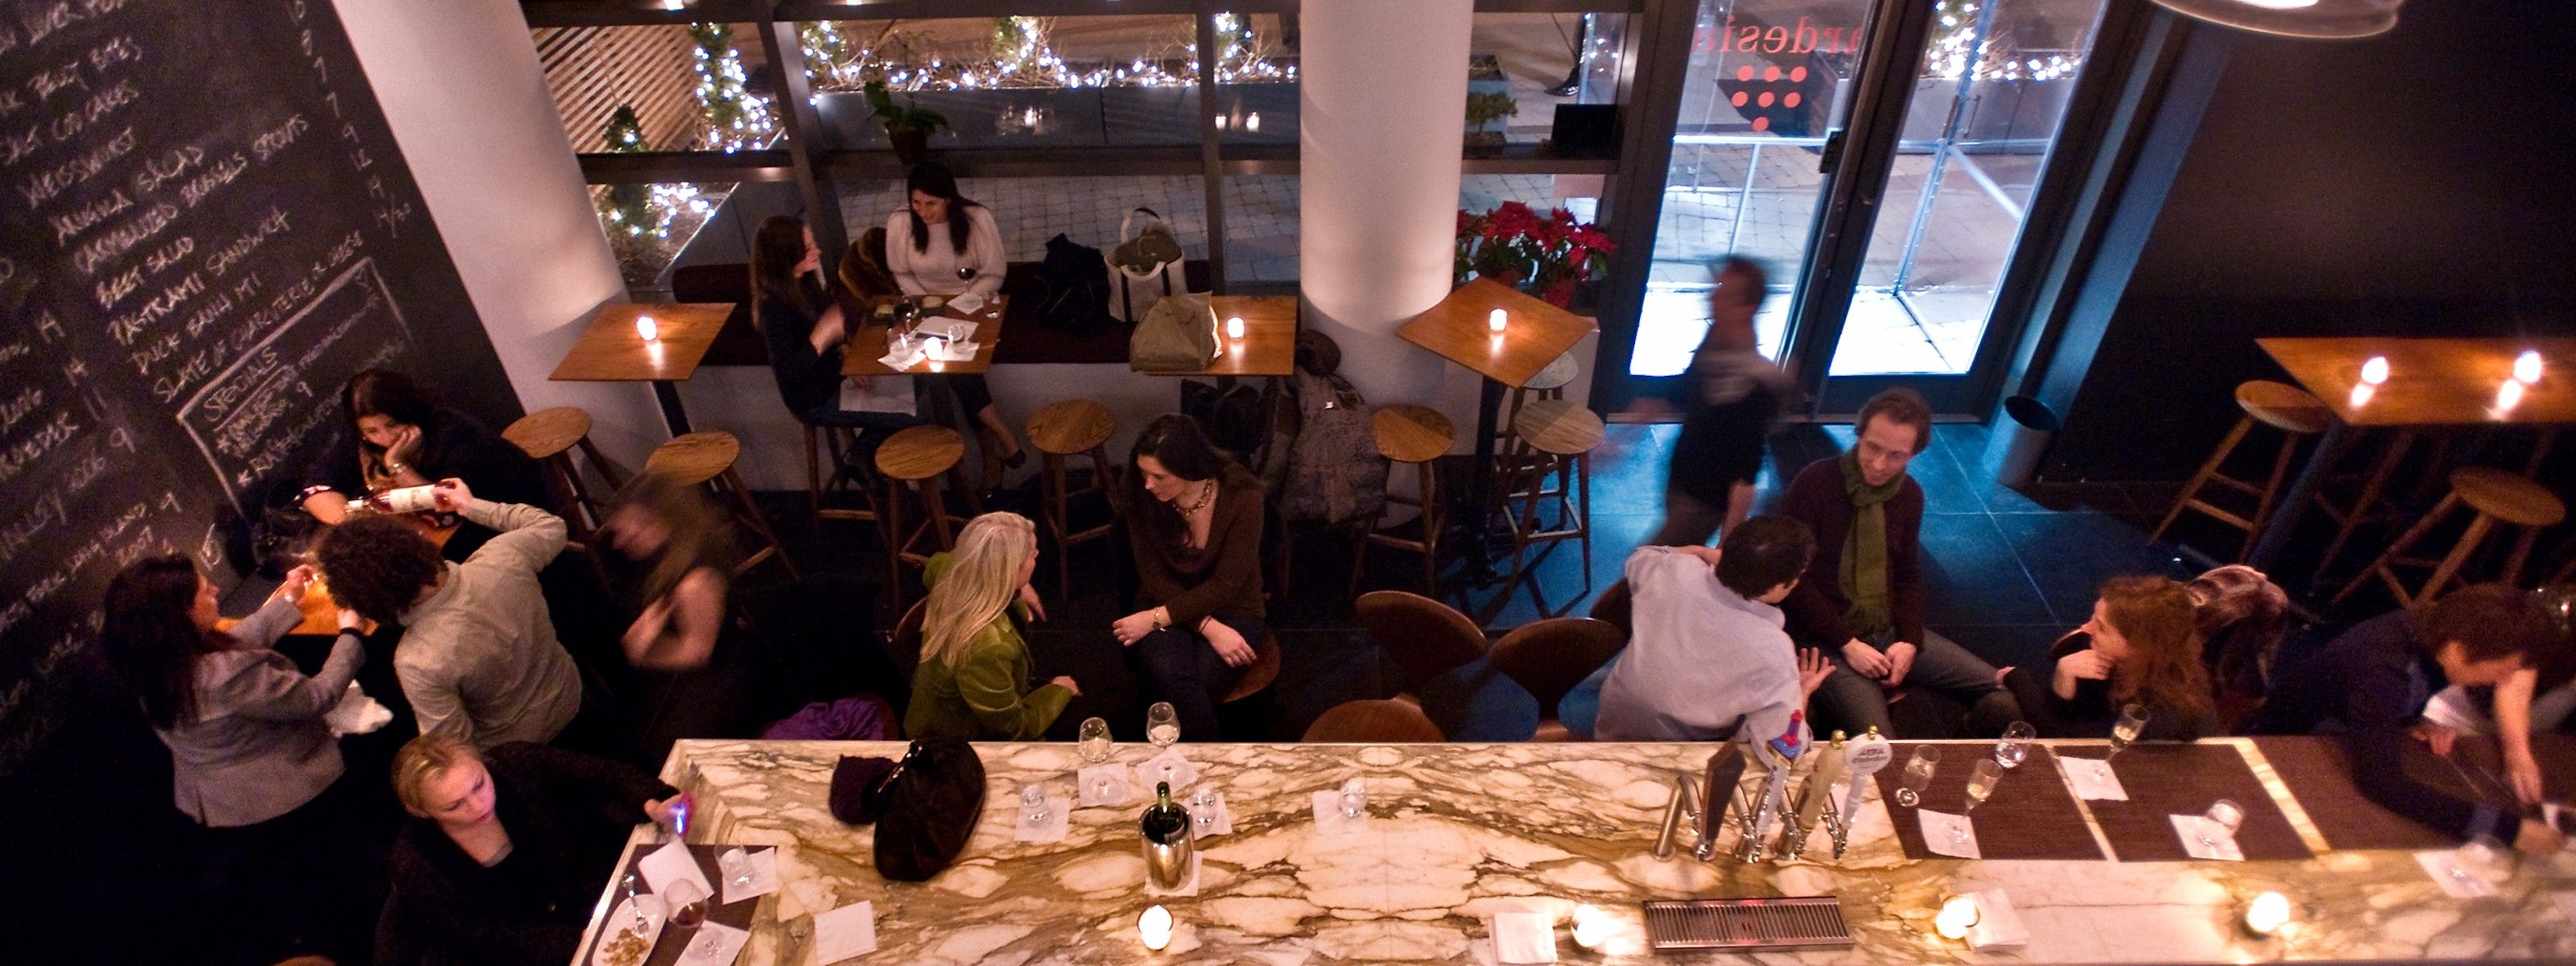 20 Great Restaurants In The Theater District   New York